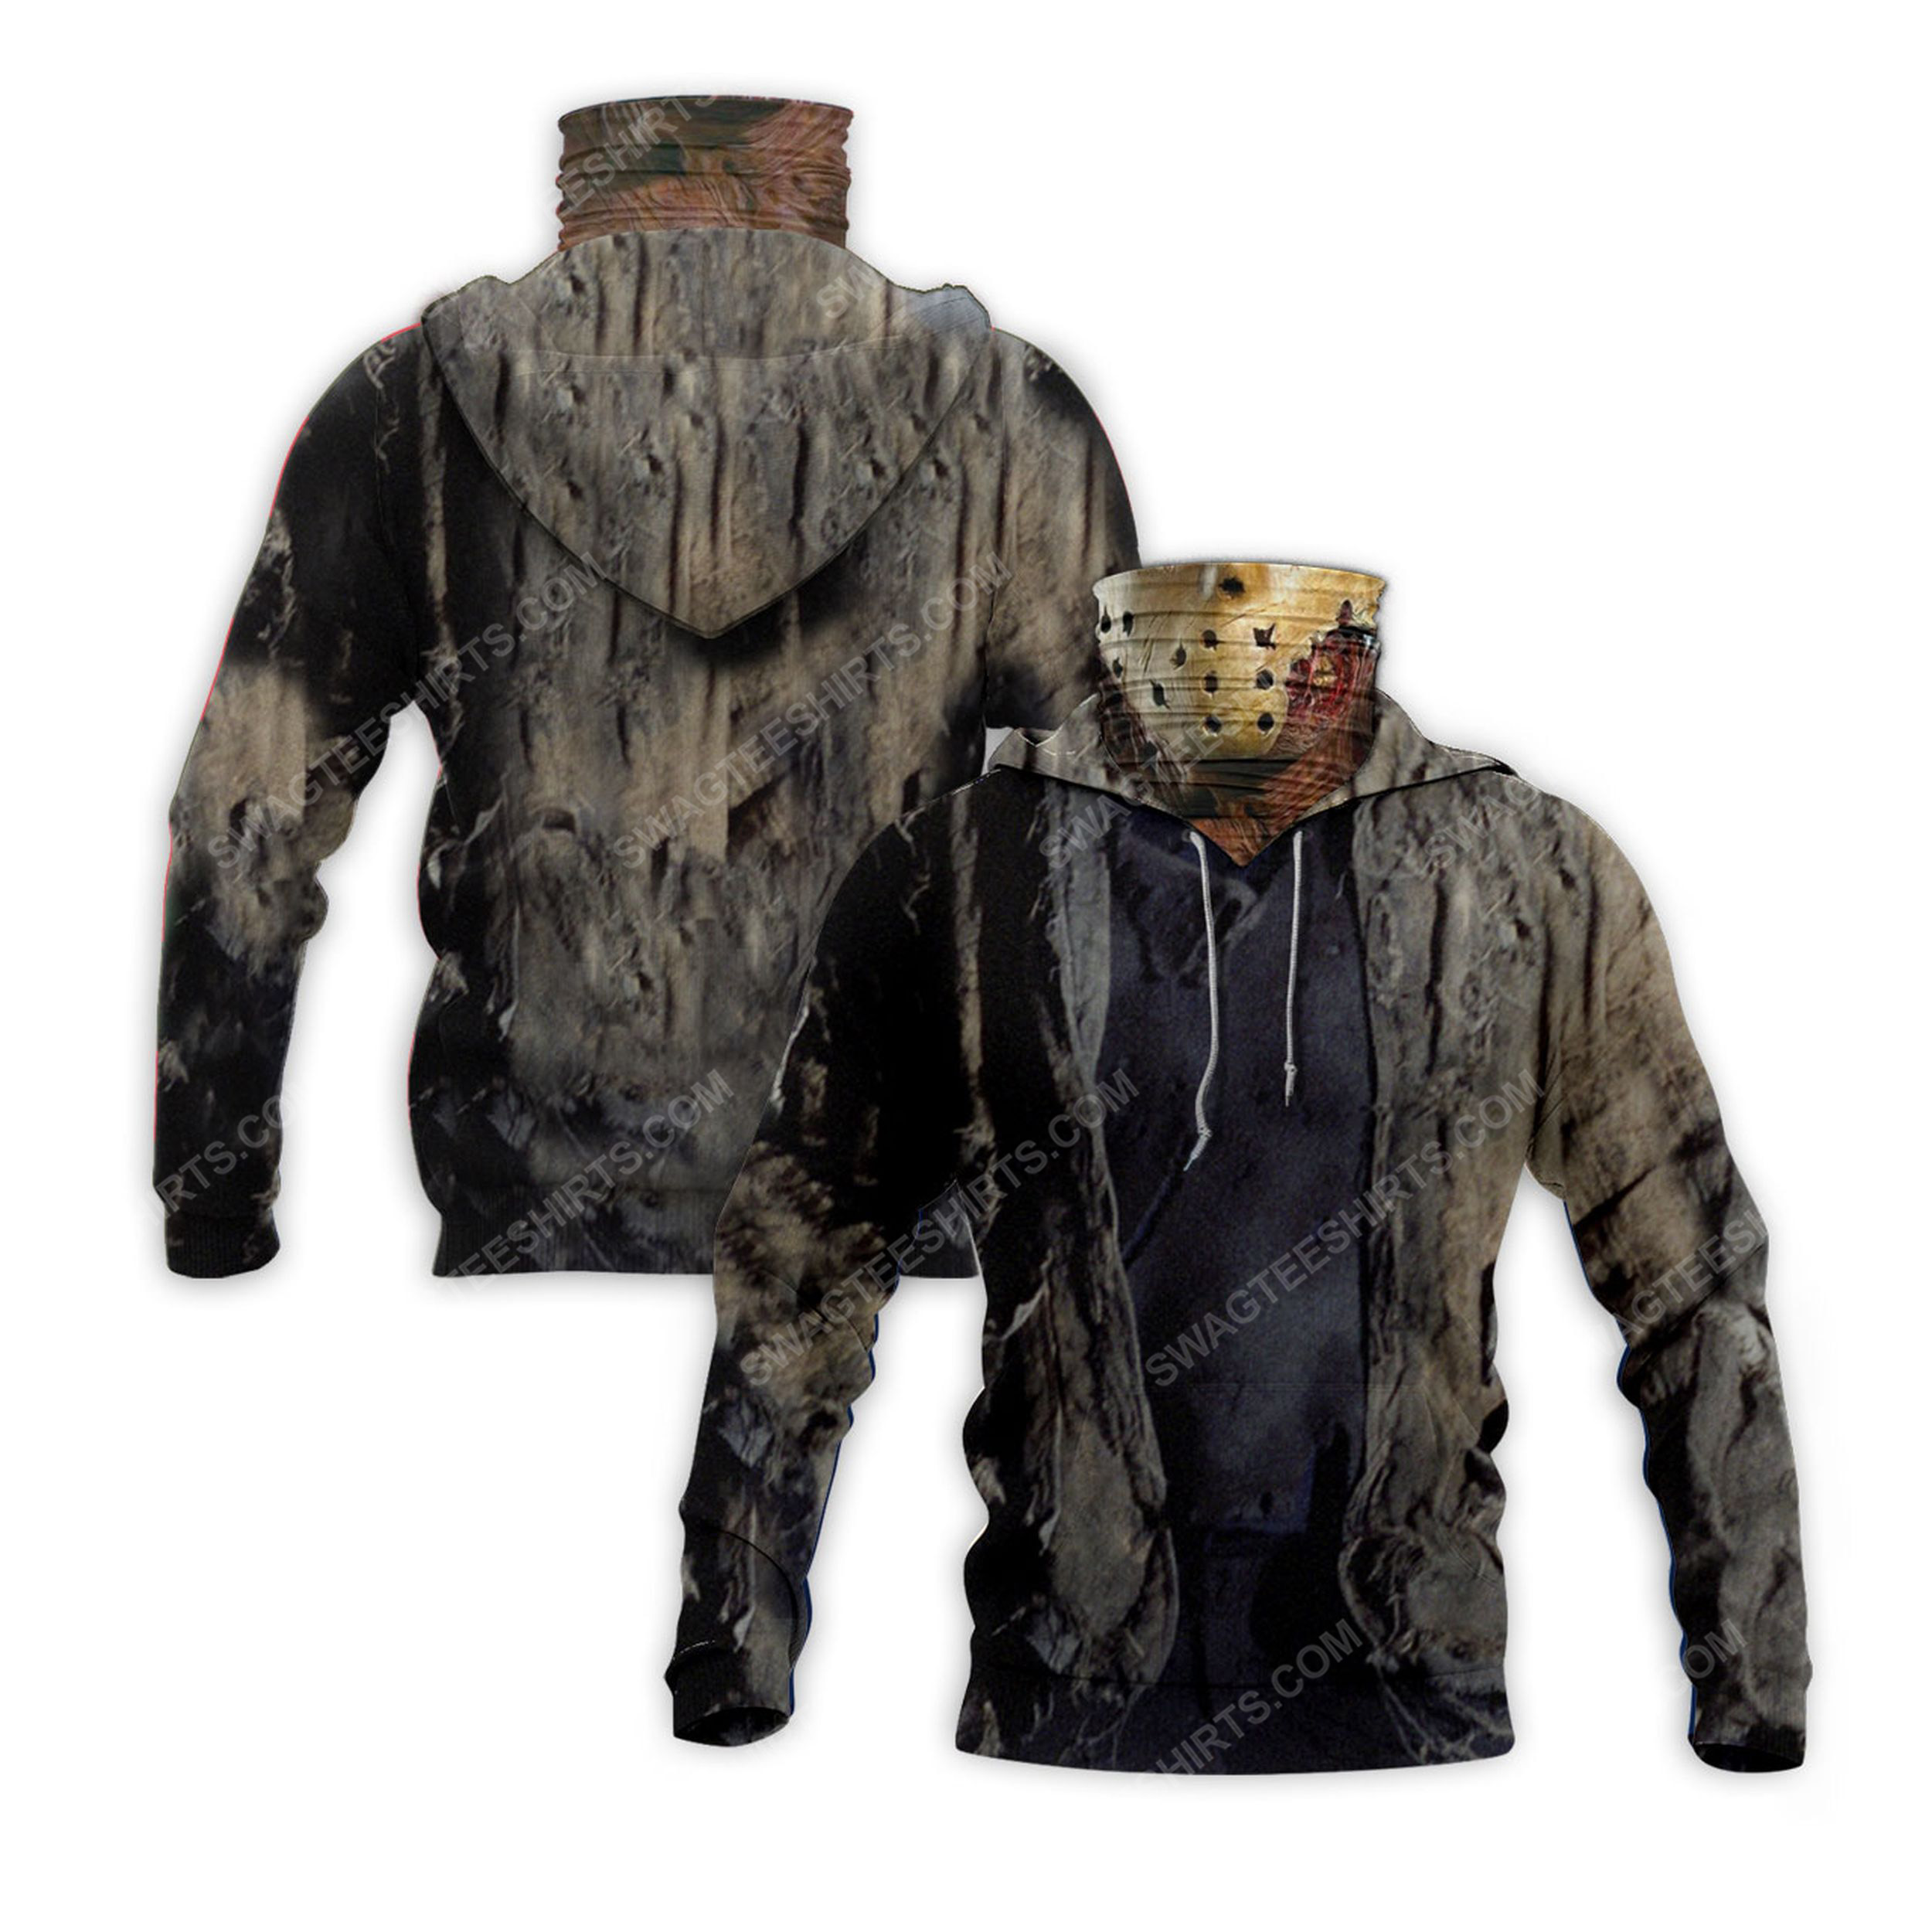 Friday the 13th jason voorhees for halloween full print mask hoodie 2(1) - Copy